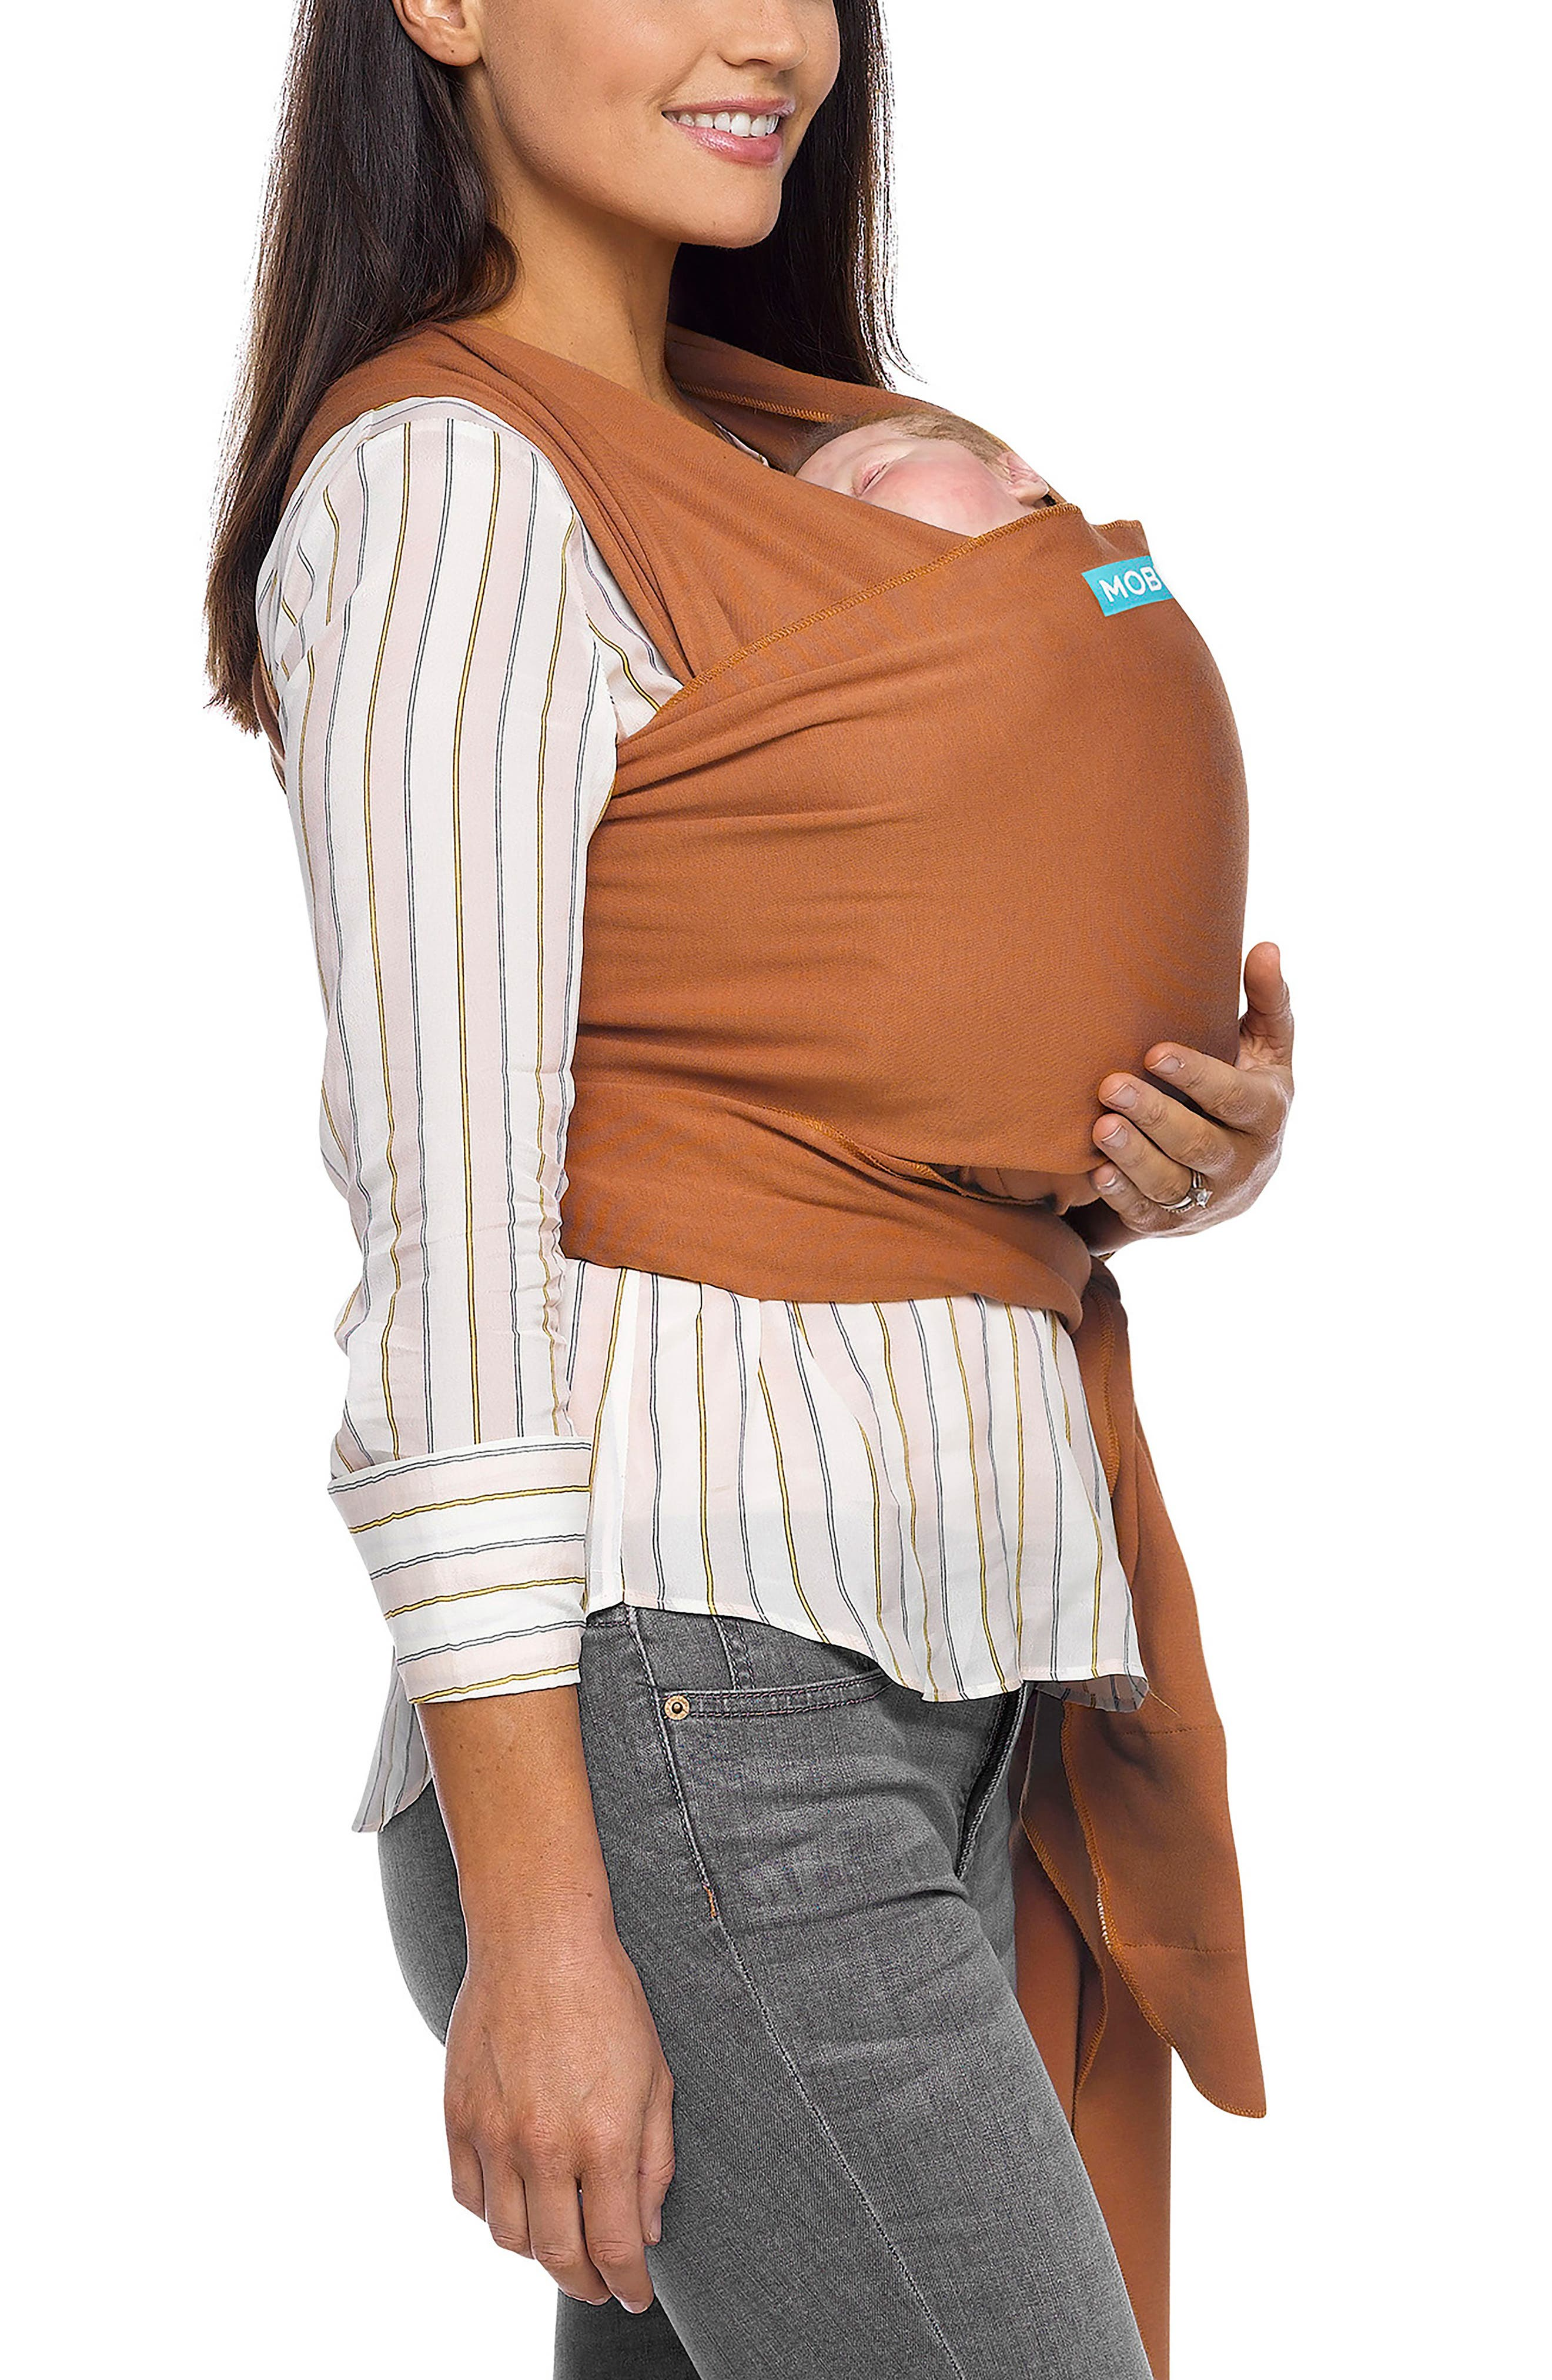 Wrap Baby Carrier,                             Alternate thumbnail 4, color,                             Caramel